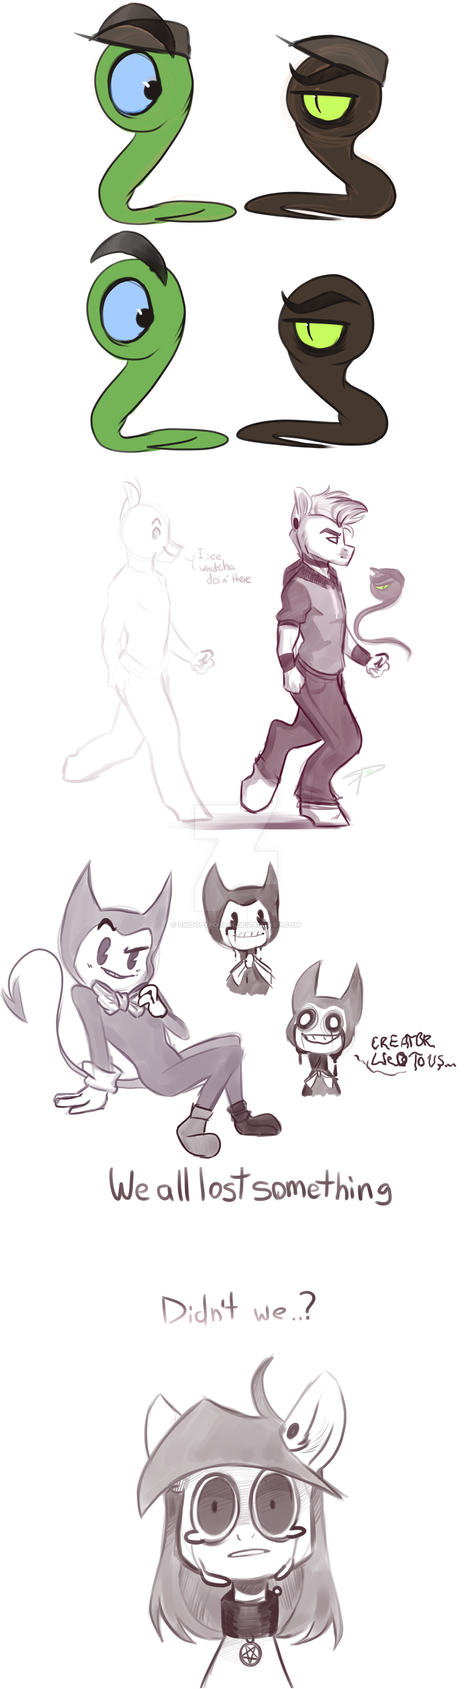 Sketch page 2 by SwoopyPoolin